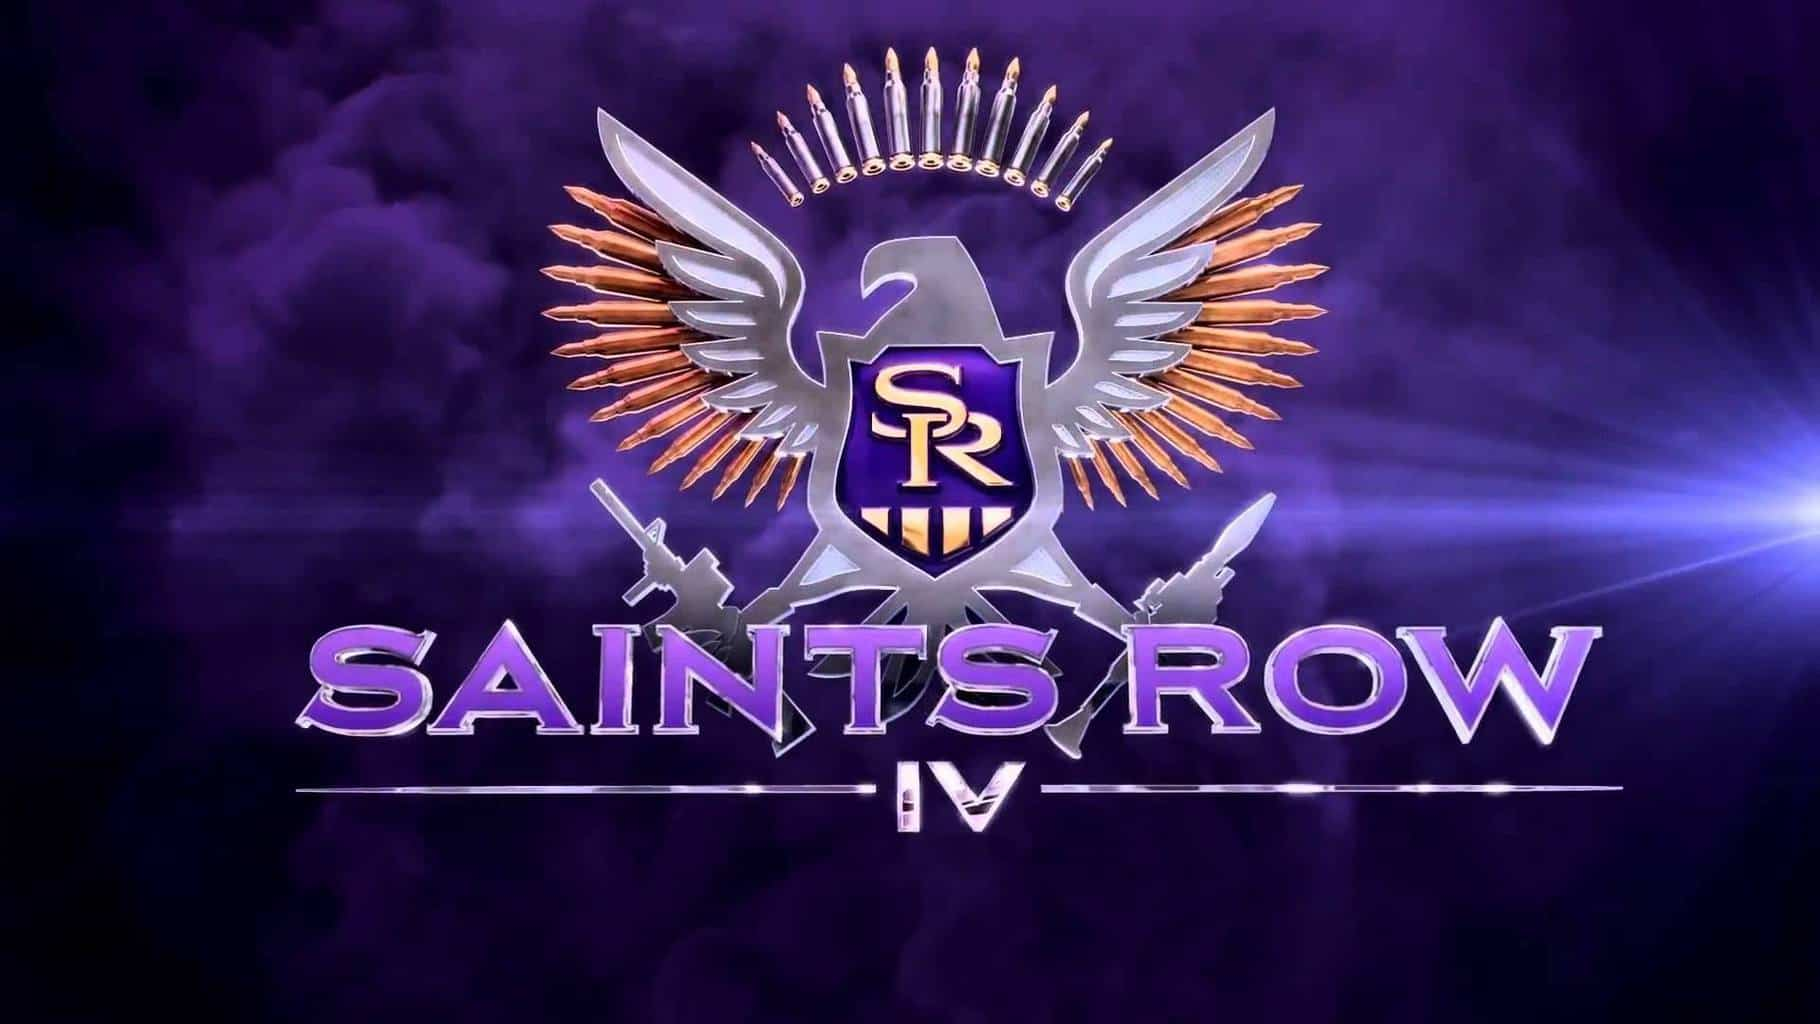 Saint Row iv